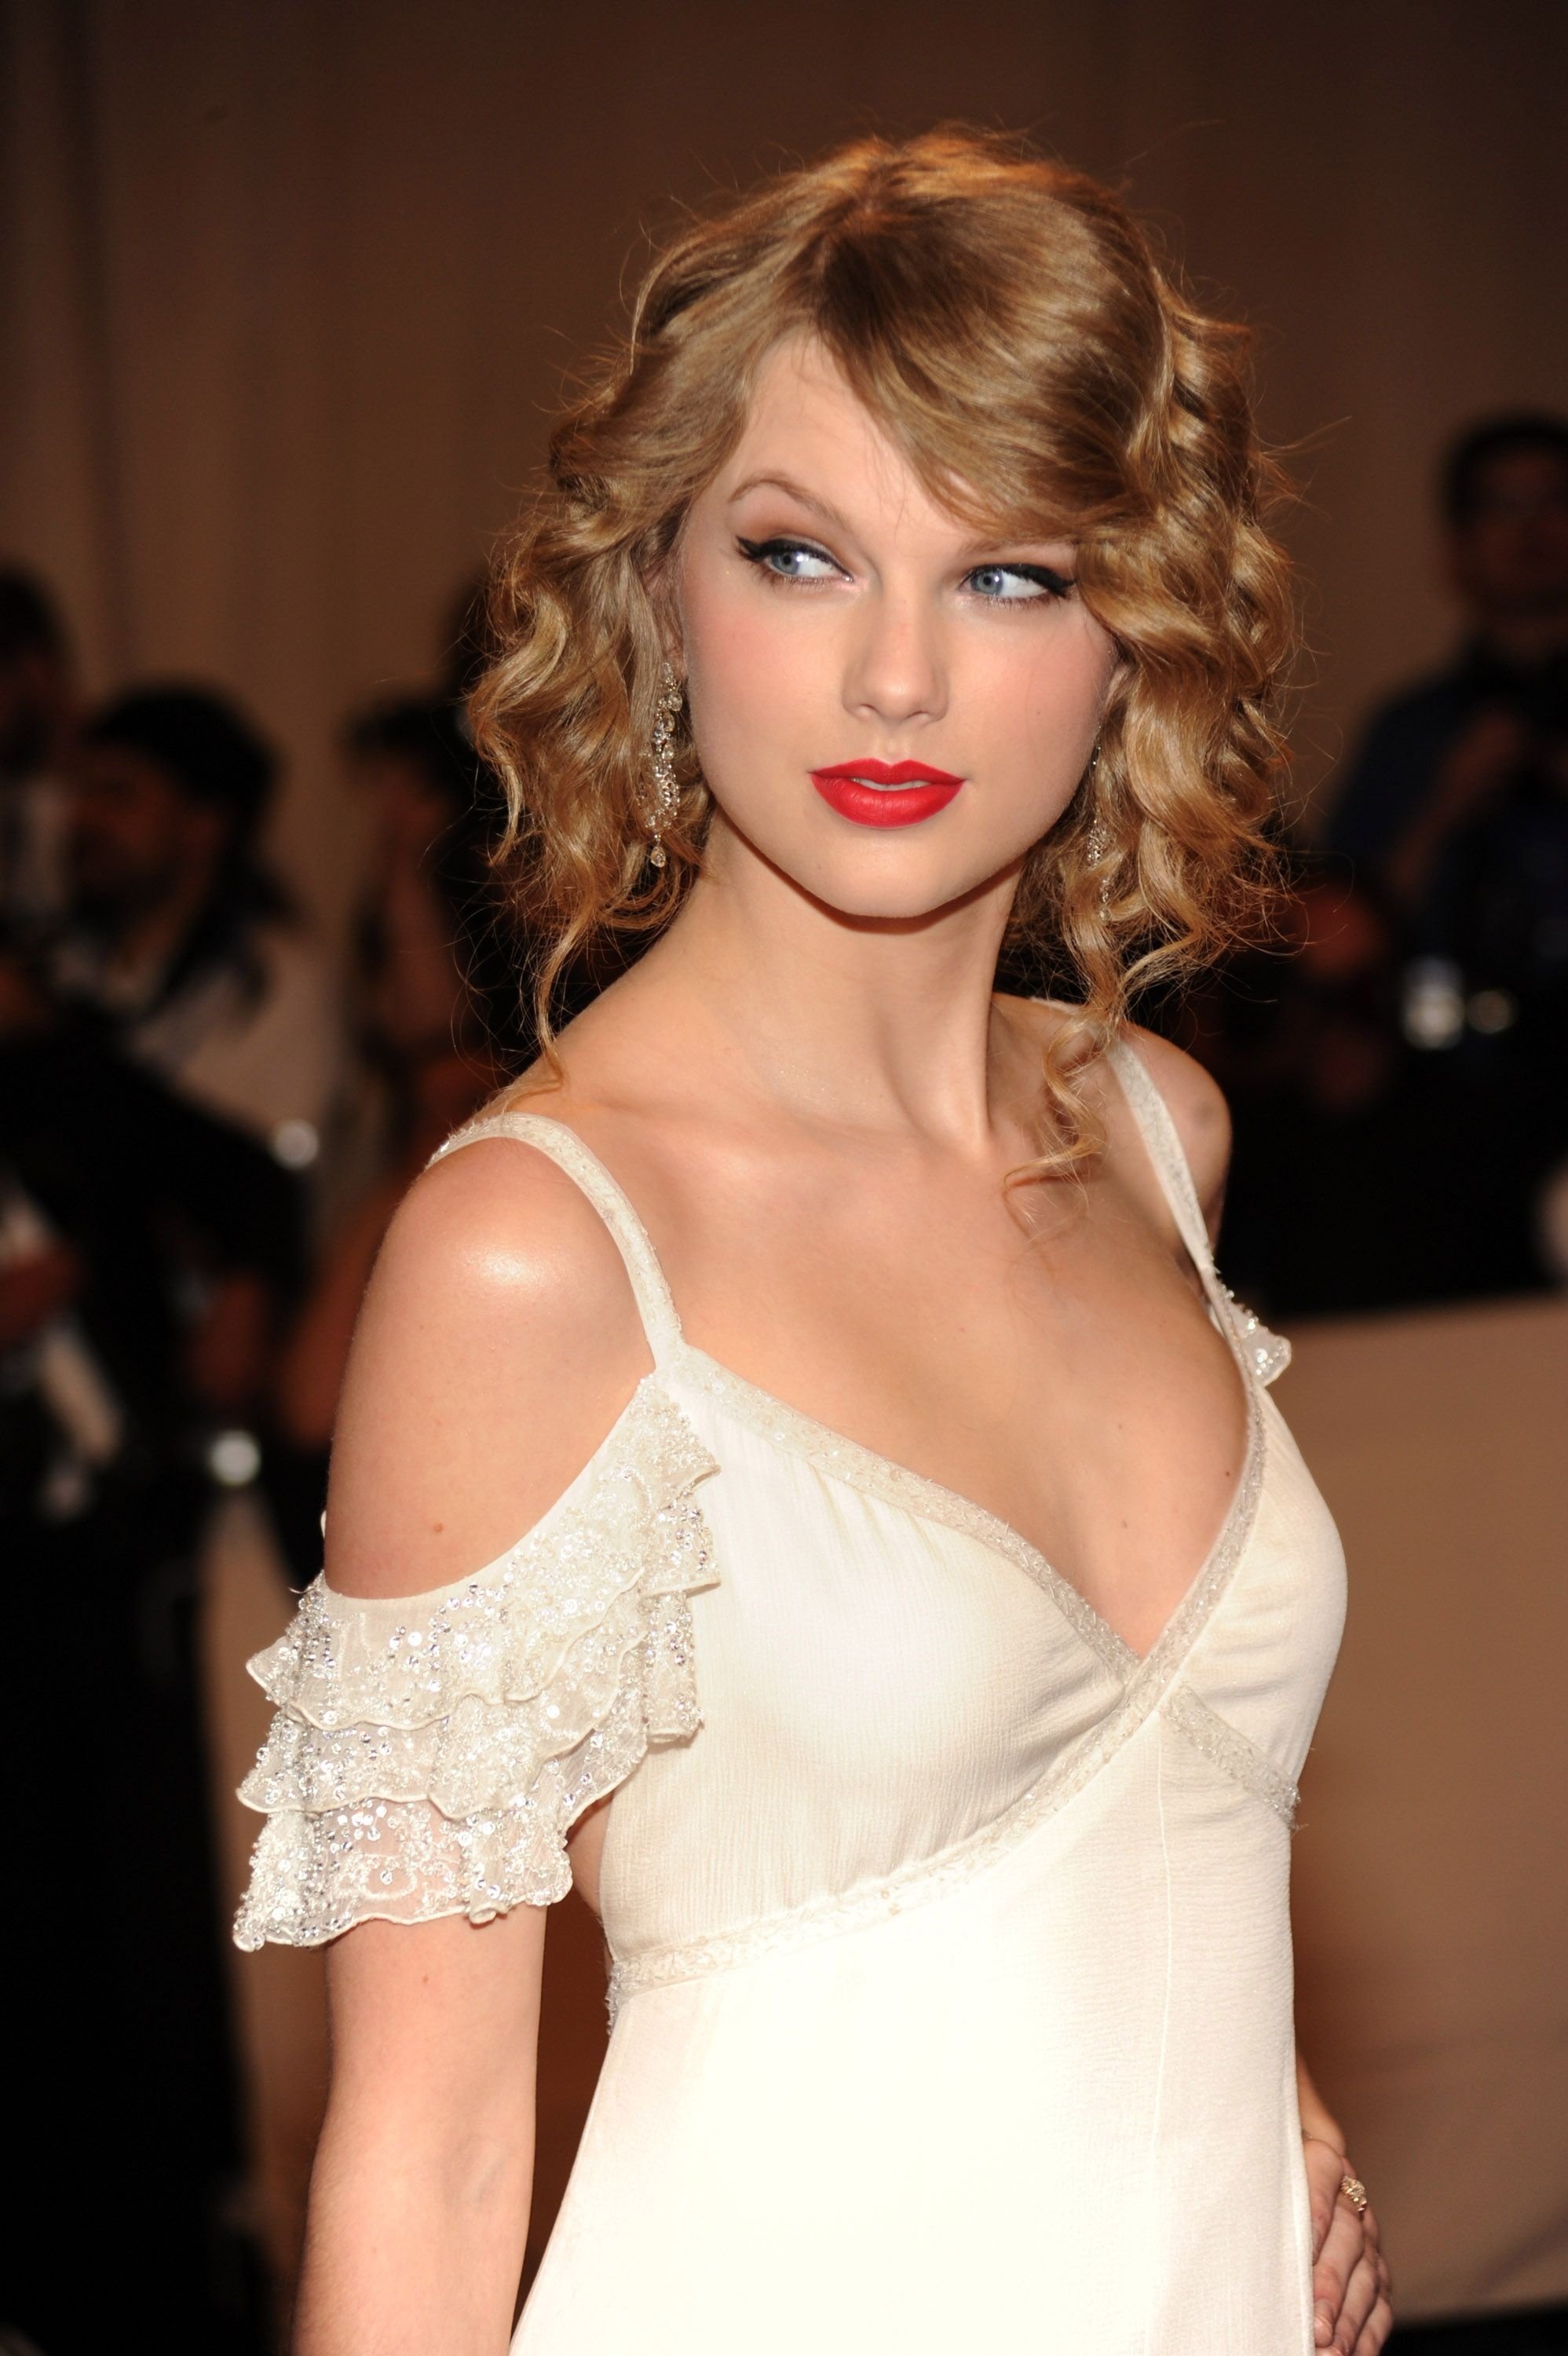 1273238816_re-actor.net_taylor-swift-03